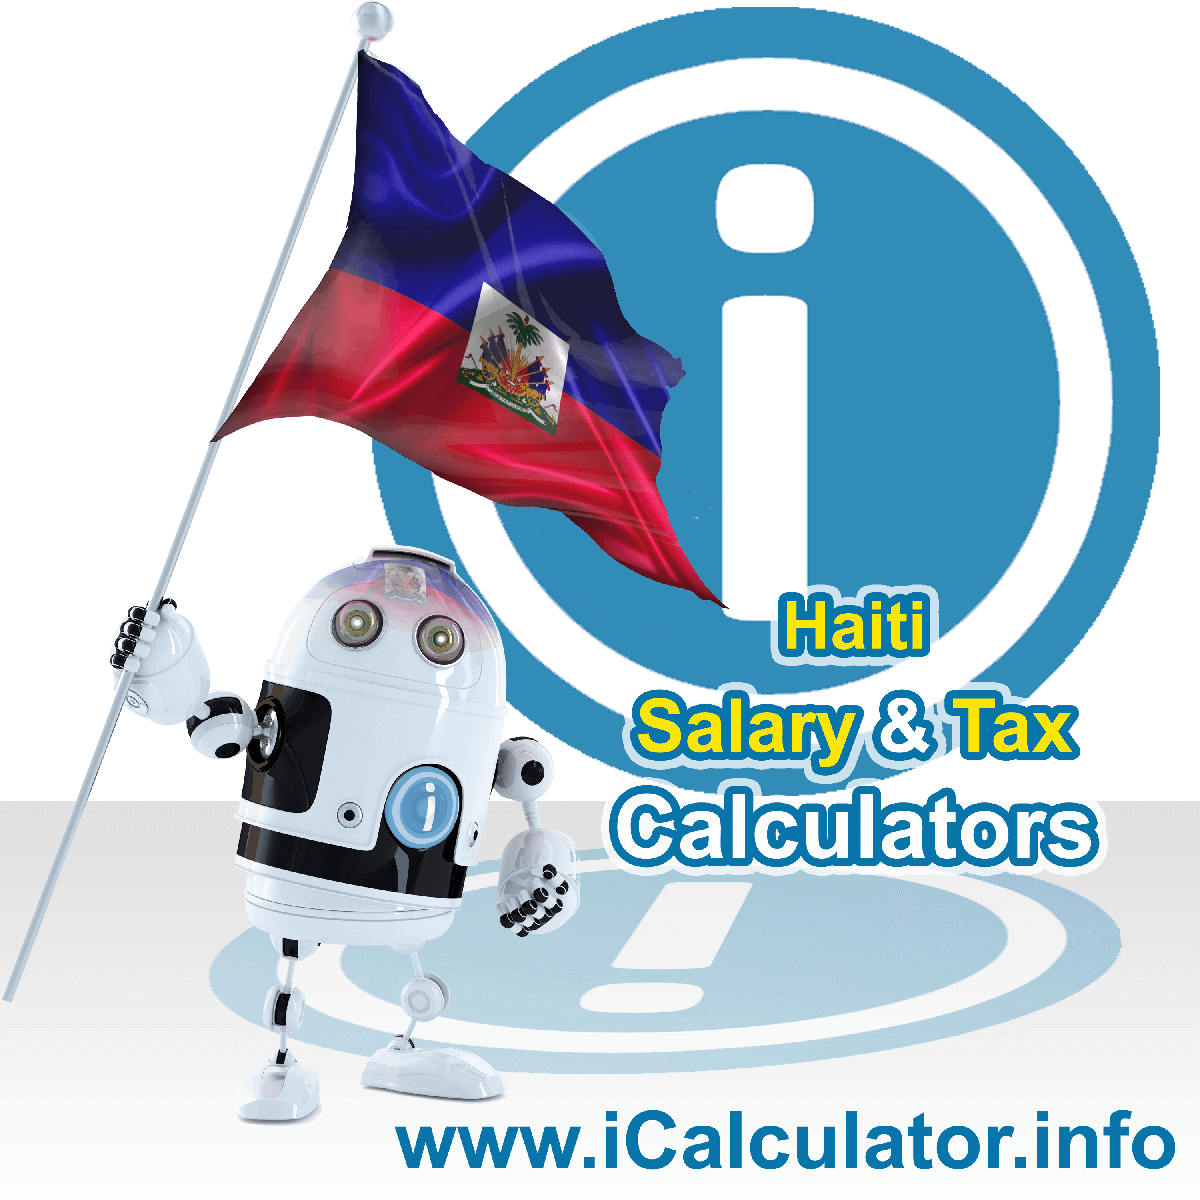 Haiti Salary Calculator. This image shows the Haitiese flag and information relating to the tax formula for the Haiti Tax Calculator